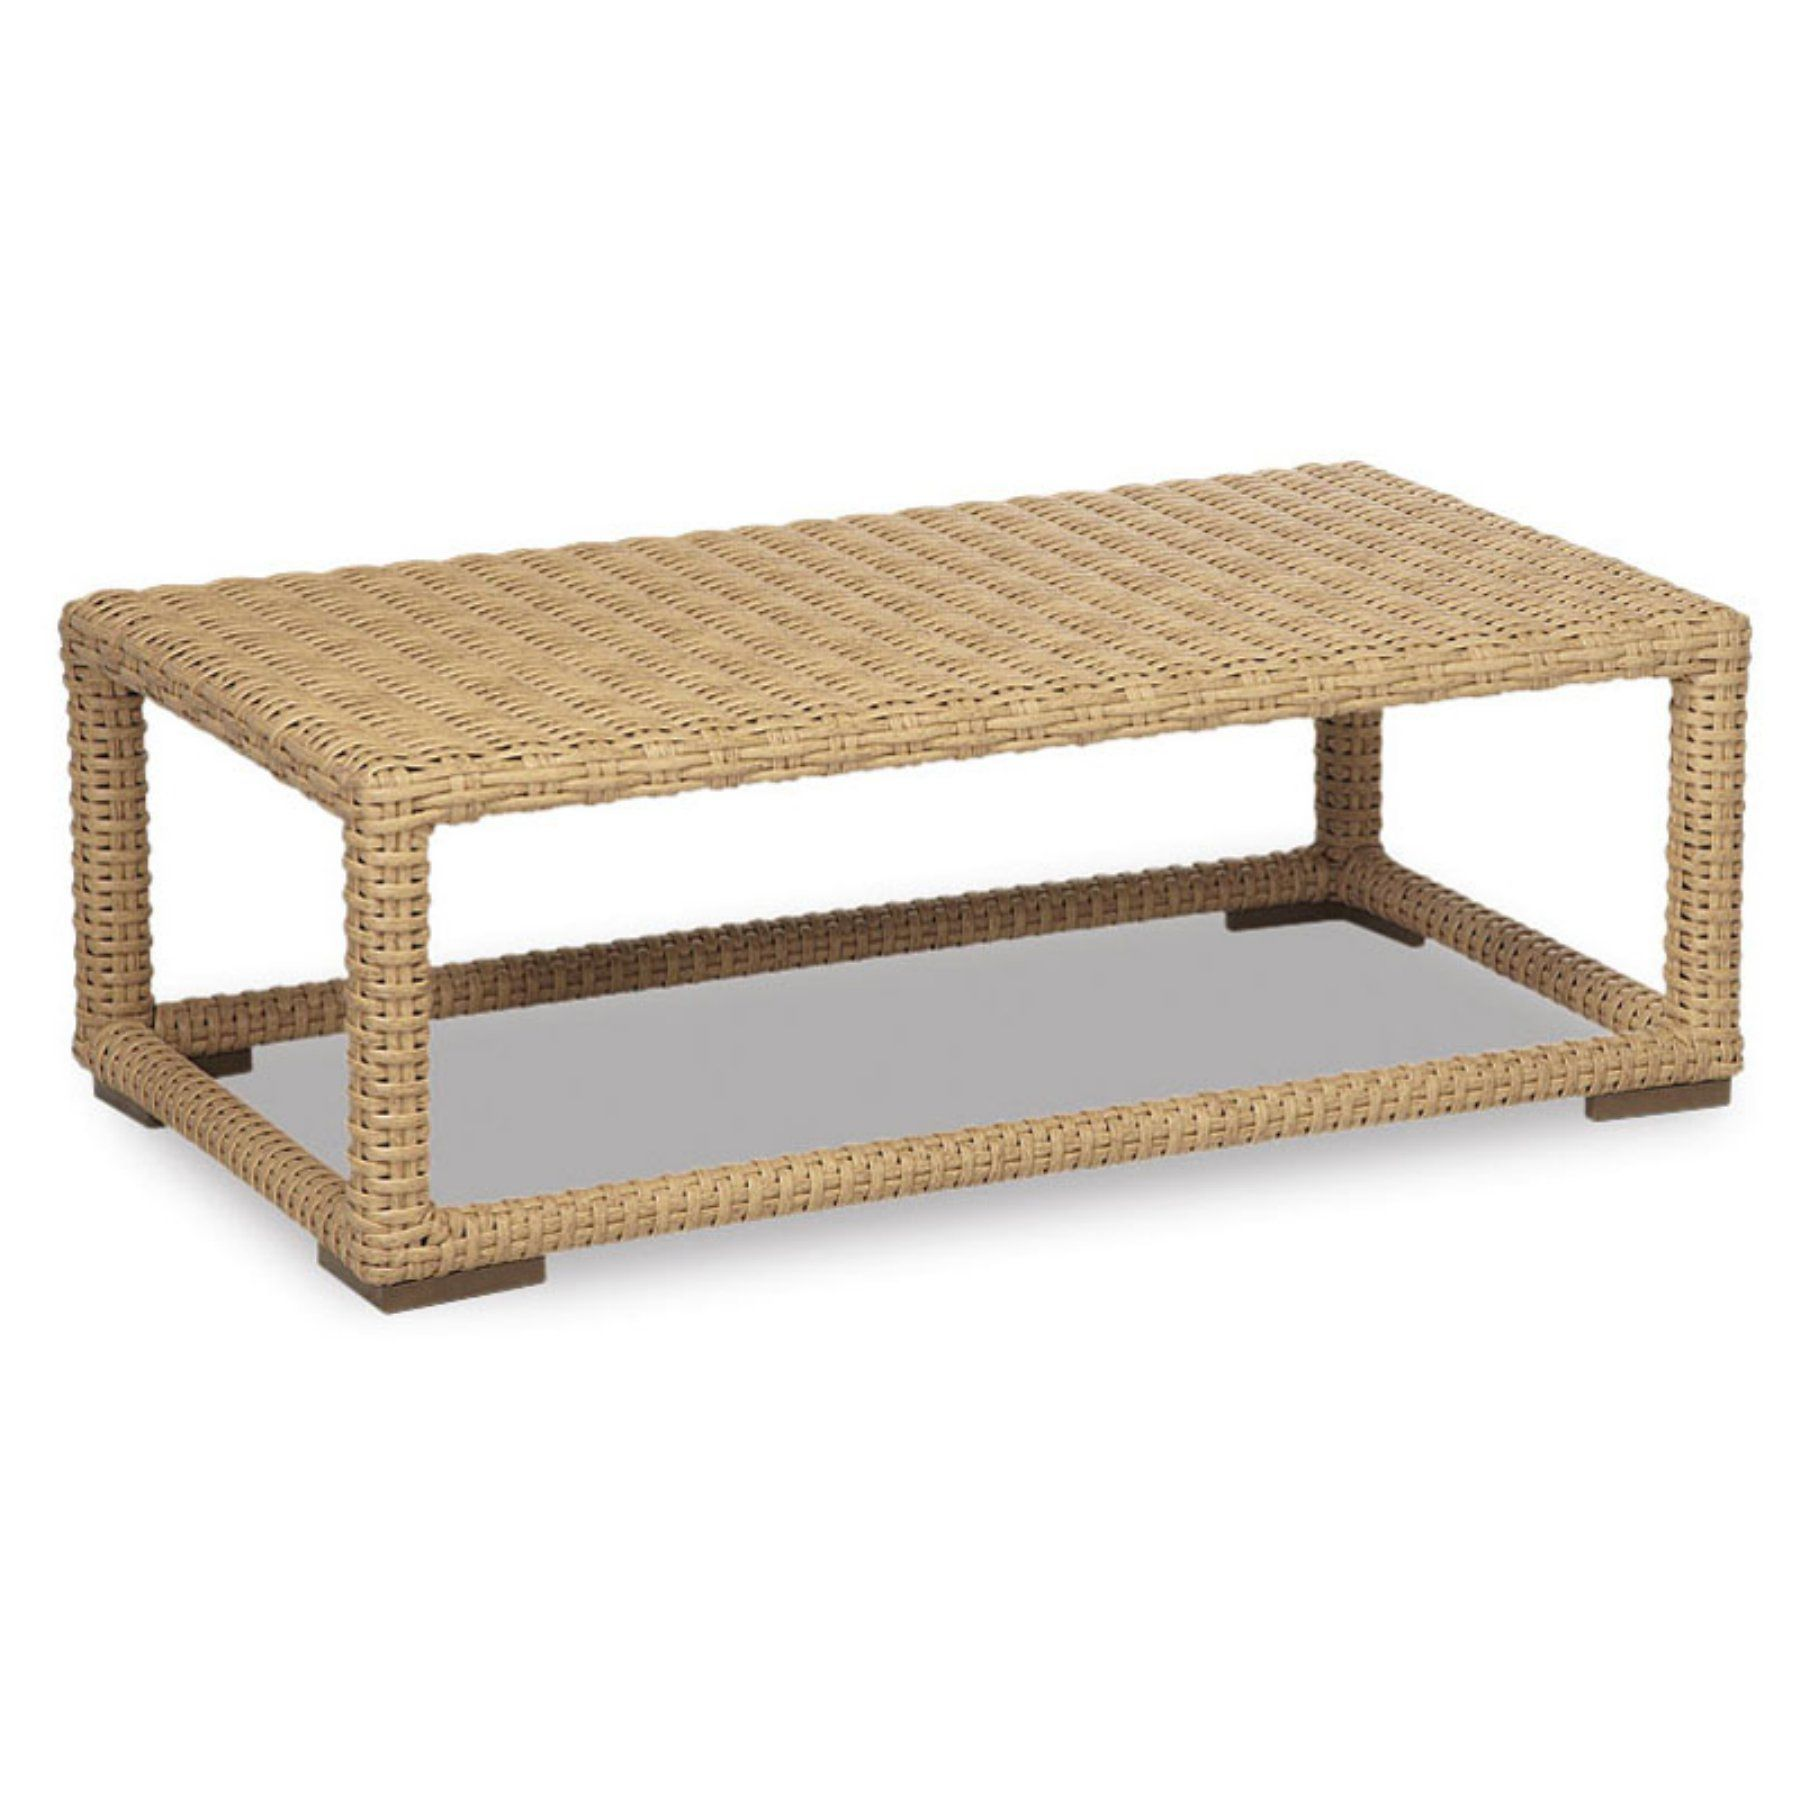 Outdoor Sunset West Leucadia Wicker Patio Coffee Table   2601 CT